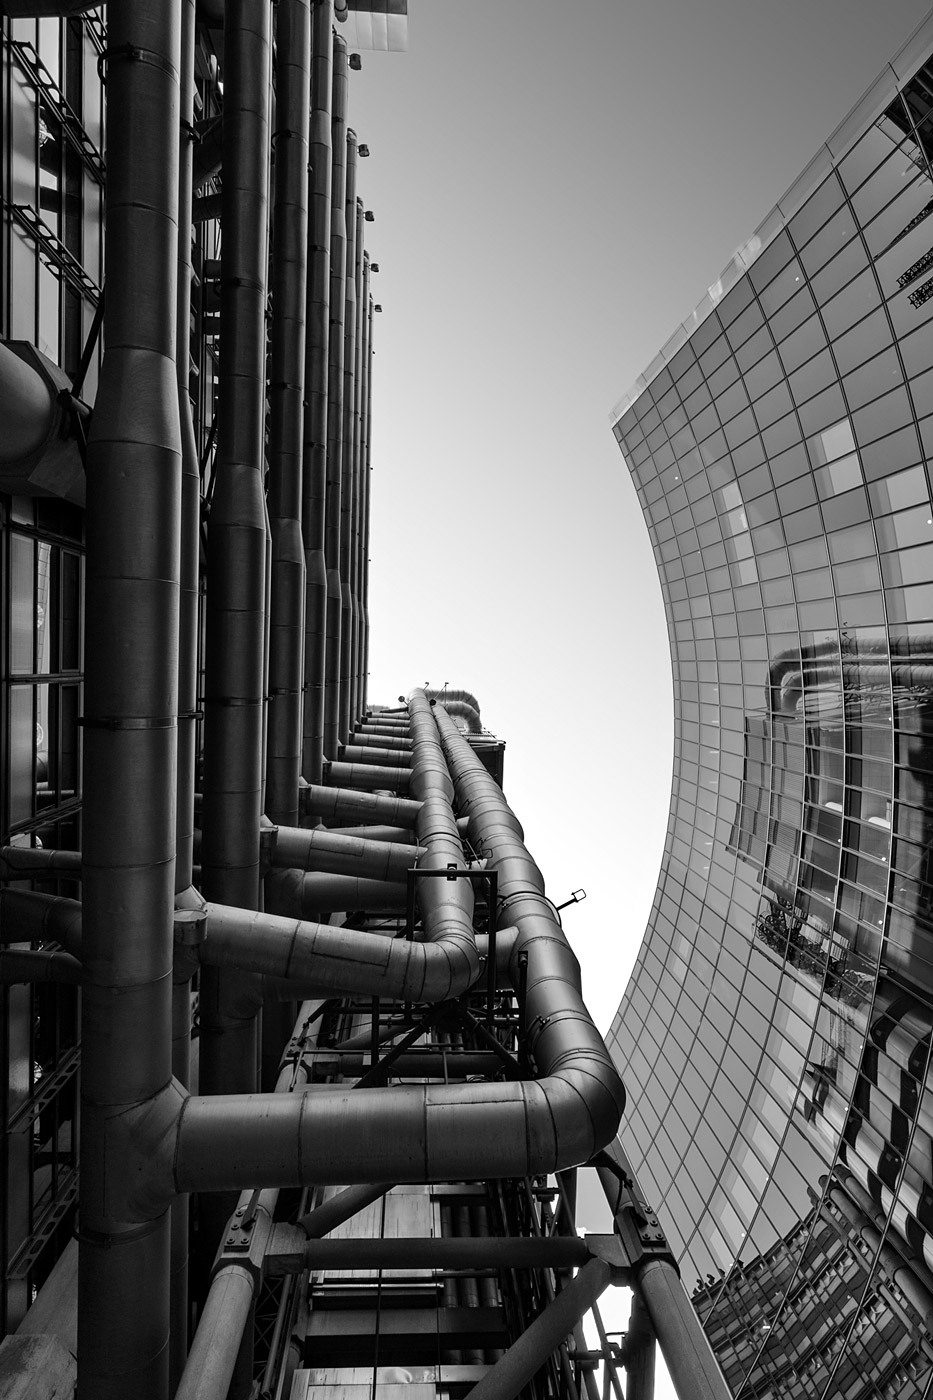 (left) Lloyd's building, London. Architect: Richard Rogers. (right) Willis Building, London. Architect: Norman Foster. © Edward Neumann / EMCN